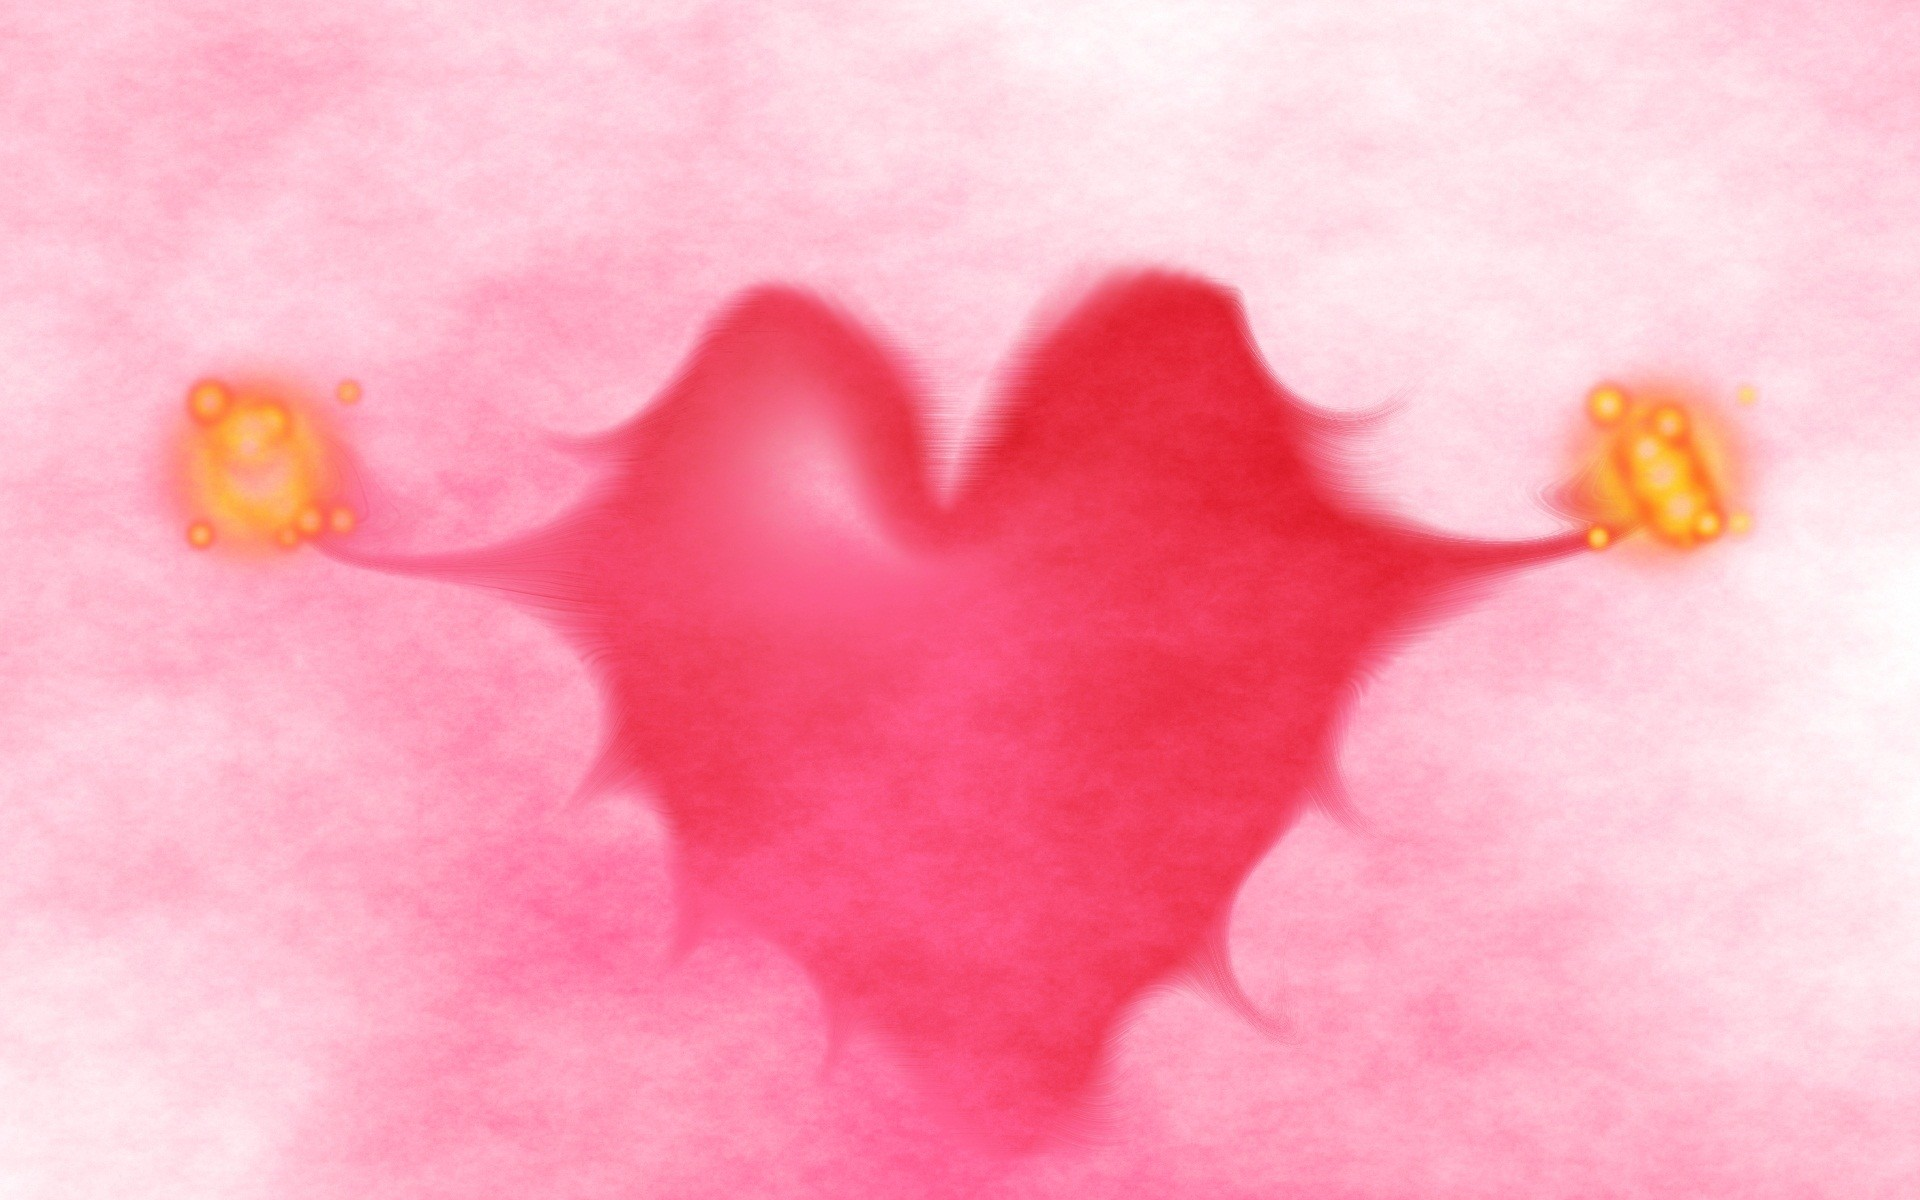 1920x1200 Pink Heart Wallpaper with Wings.  Free_Wallpaper__A_Pink_Heart_with_Wings_Free_to_Go_Anywhere.jpg